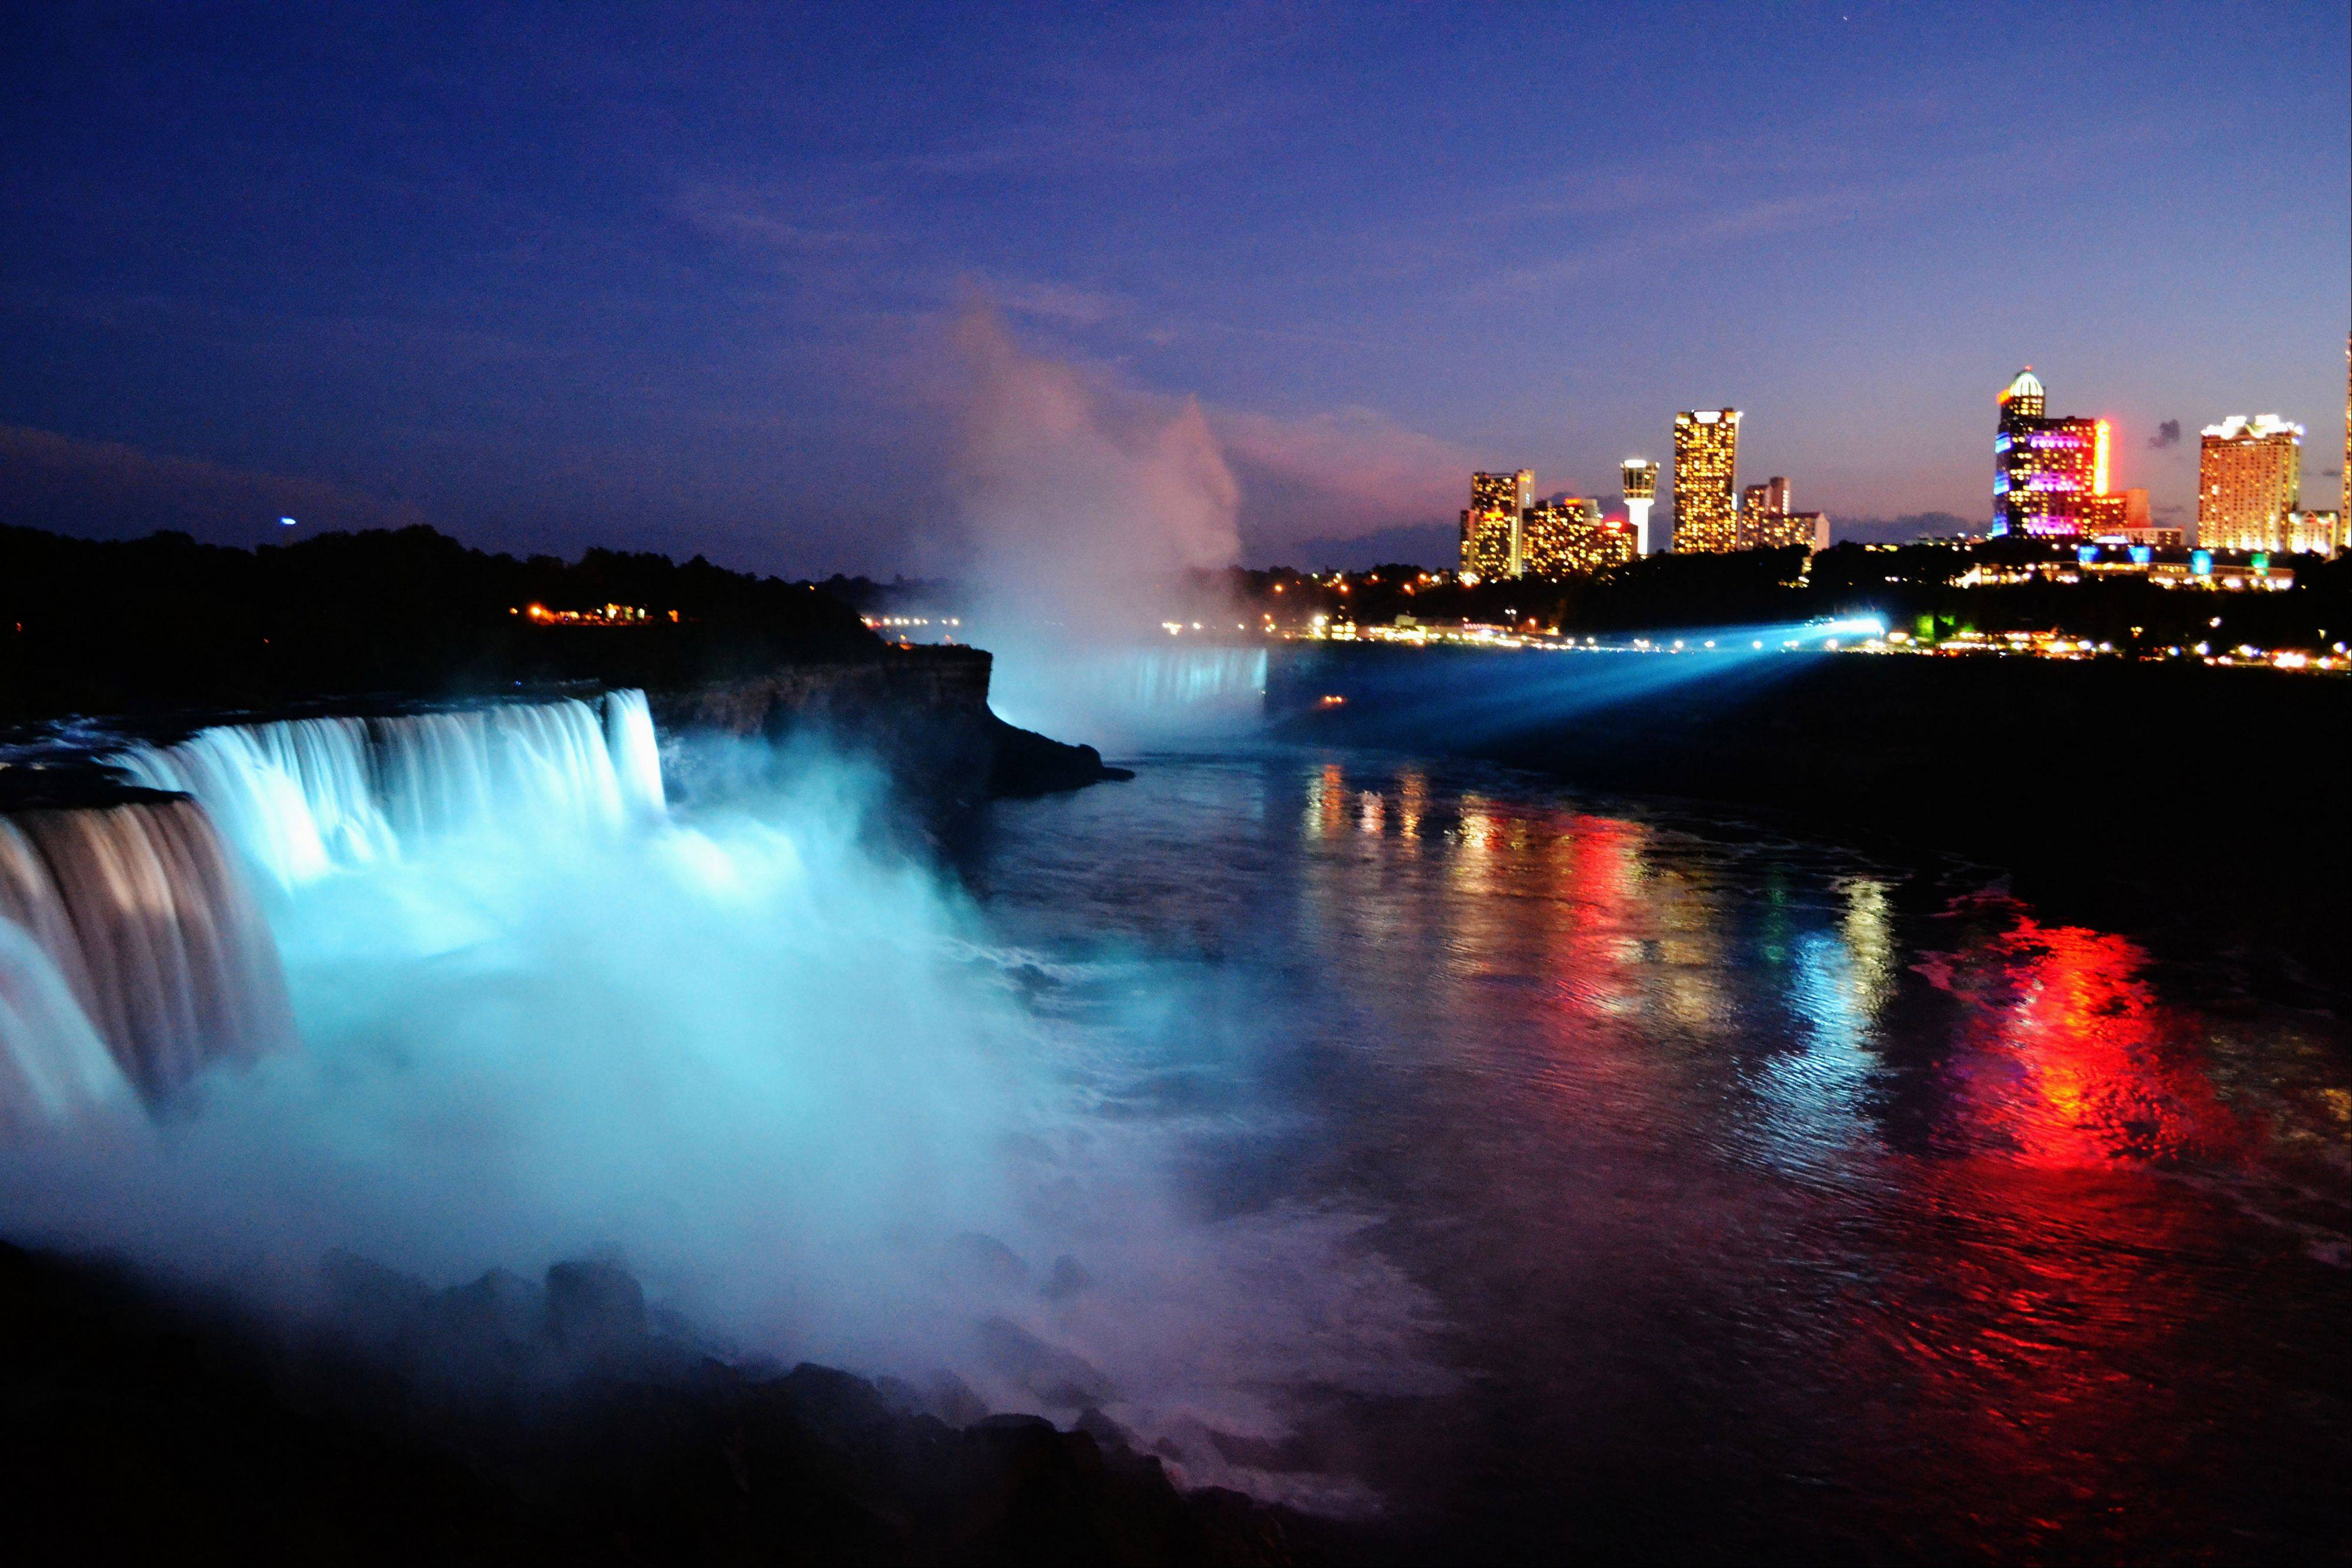 A view of Niagara Falls at night becomes magical as it is seen from the Observation Tower in New York last month.